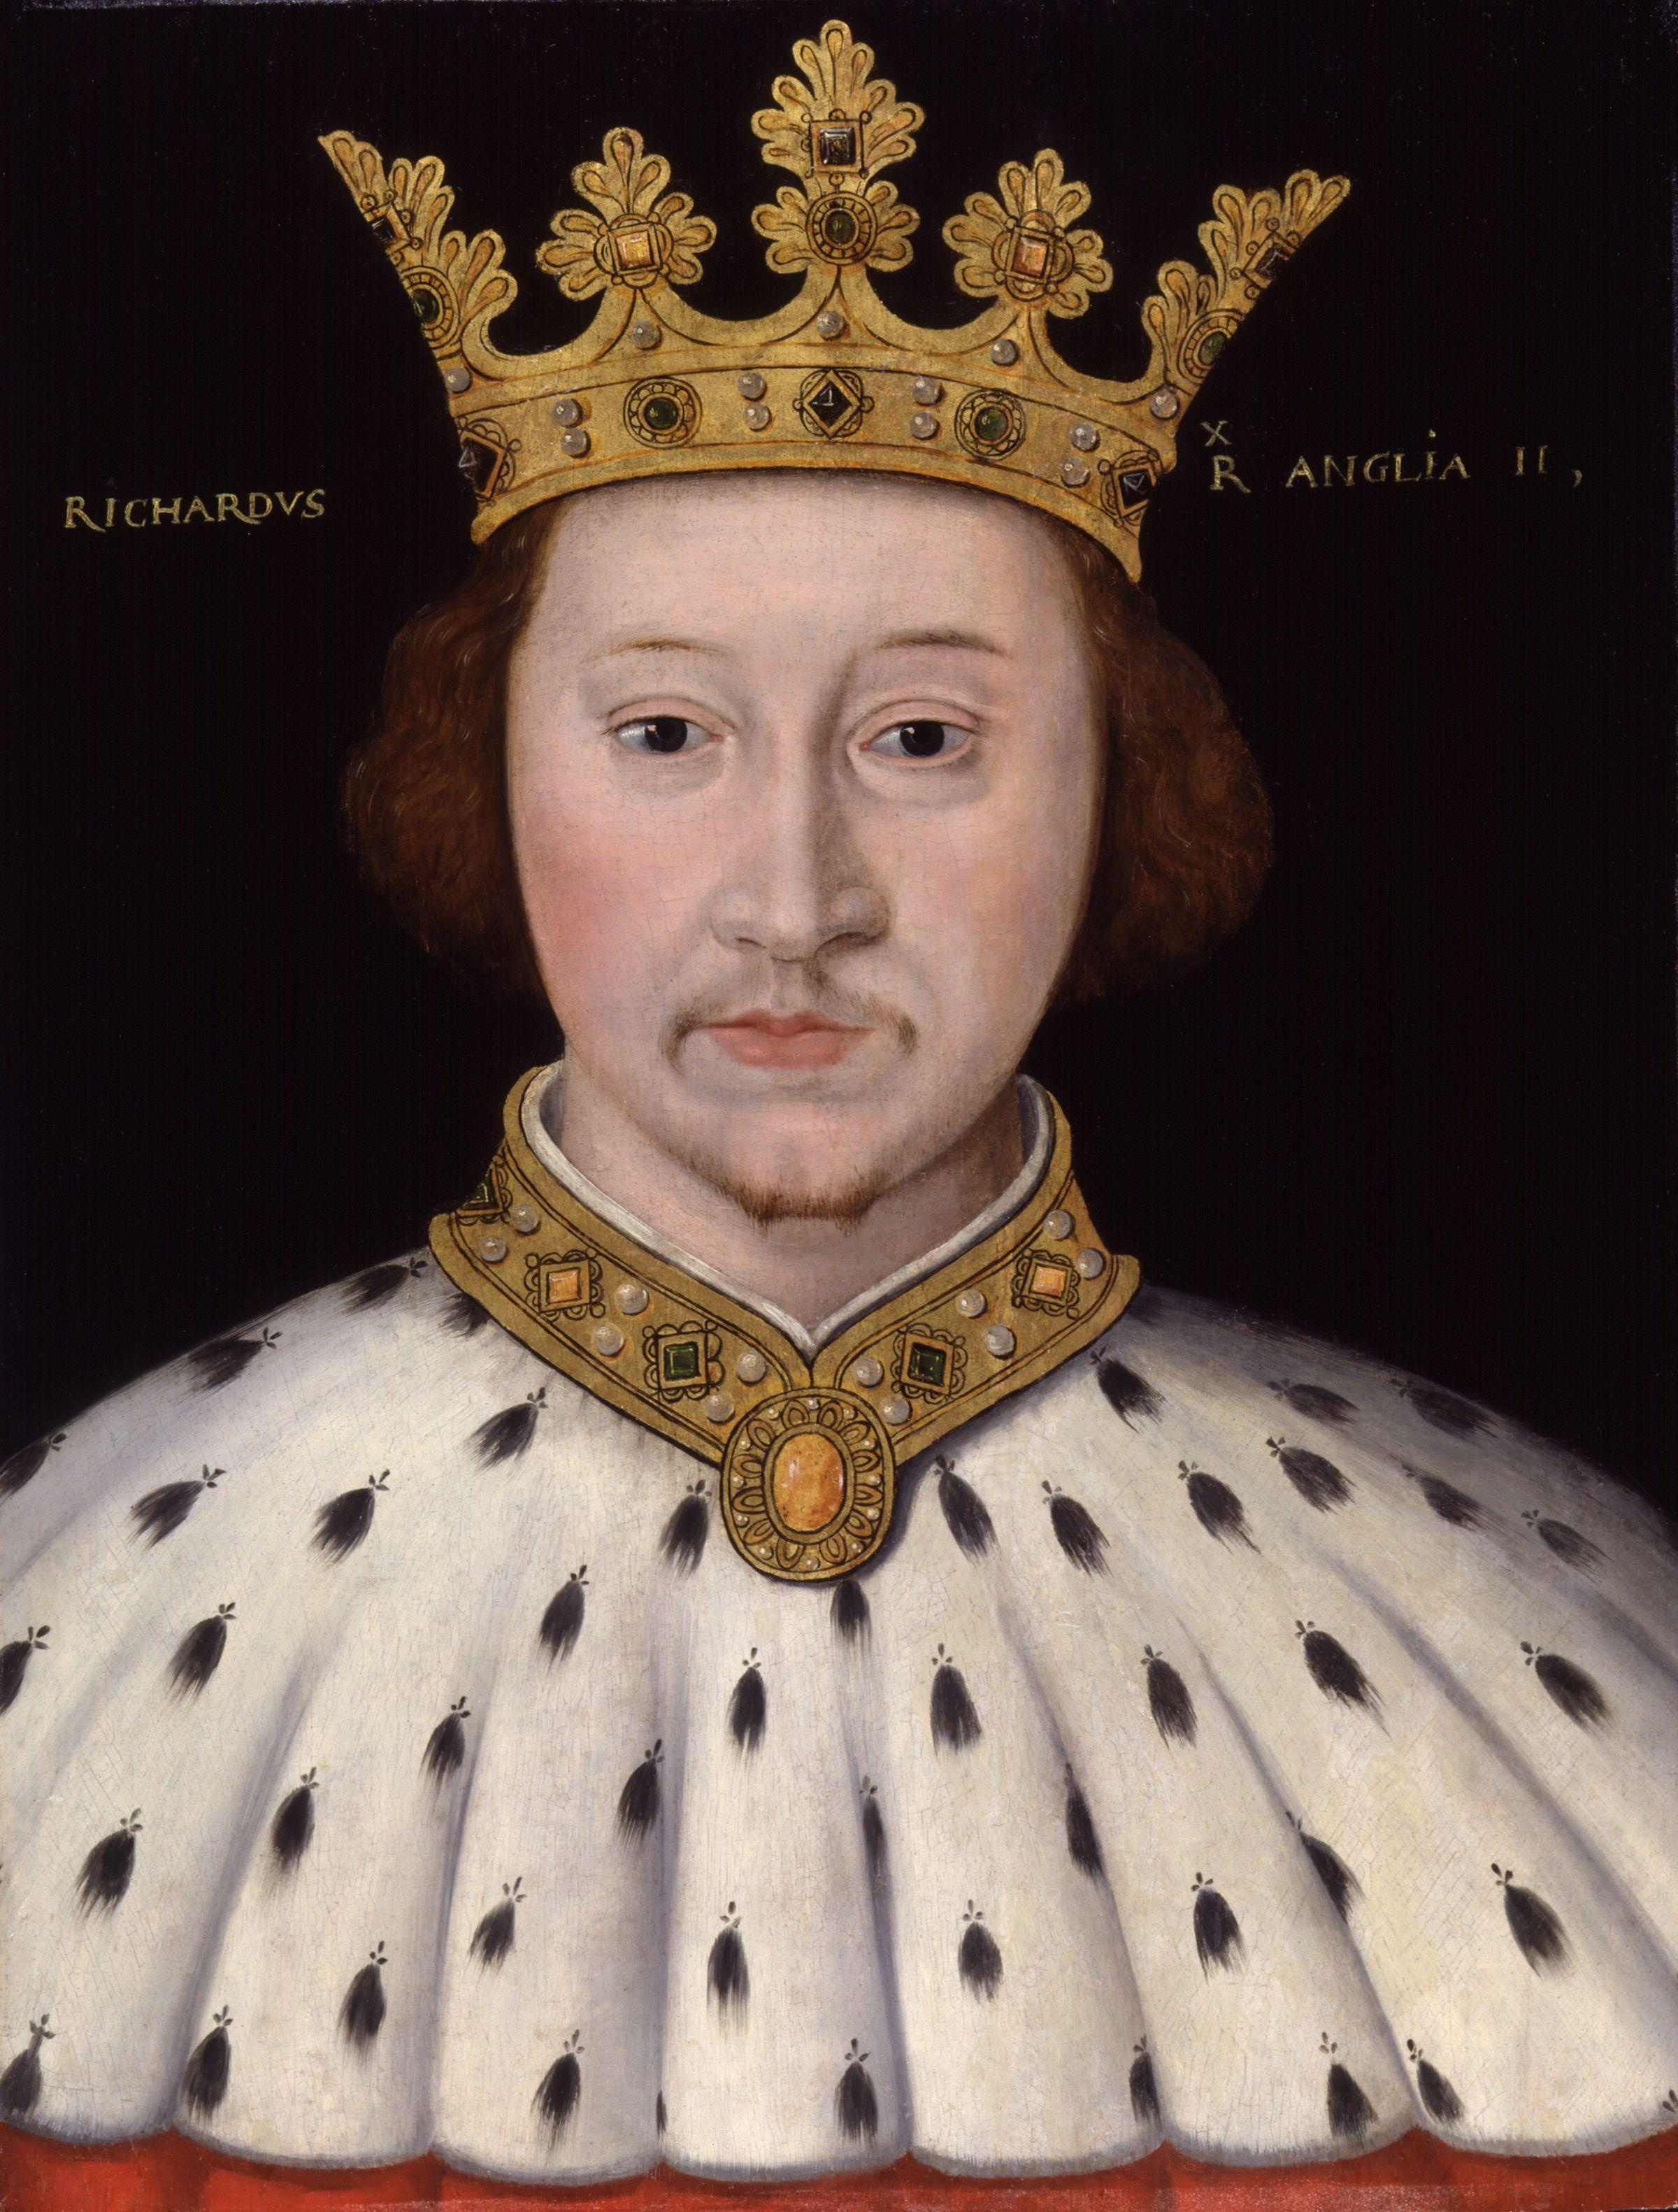 study on shakespeare richard ii drama essay An authoritative study guide, by one of england's most distinguished shakespeareans, to richard ii in its theatrical, cultural and political contexts professor hattaway's study places richard ii within the contexts of shakespeare's life and of the strenuous political debates that were taking place at the end of the reign of elizabeth i.